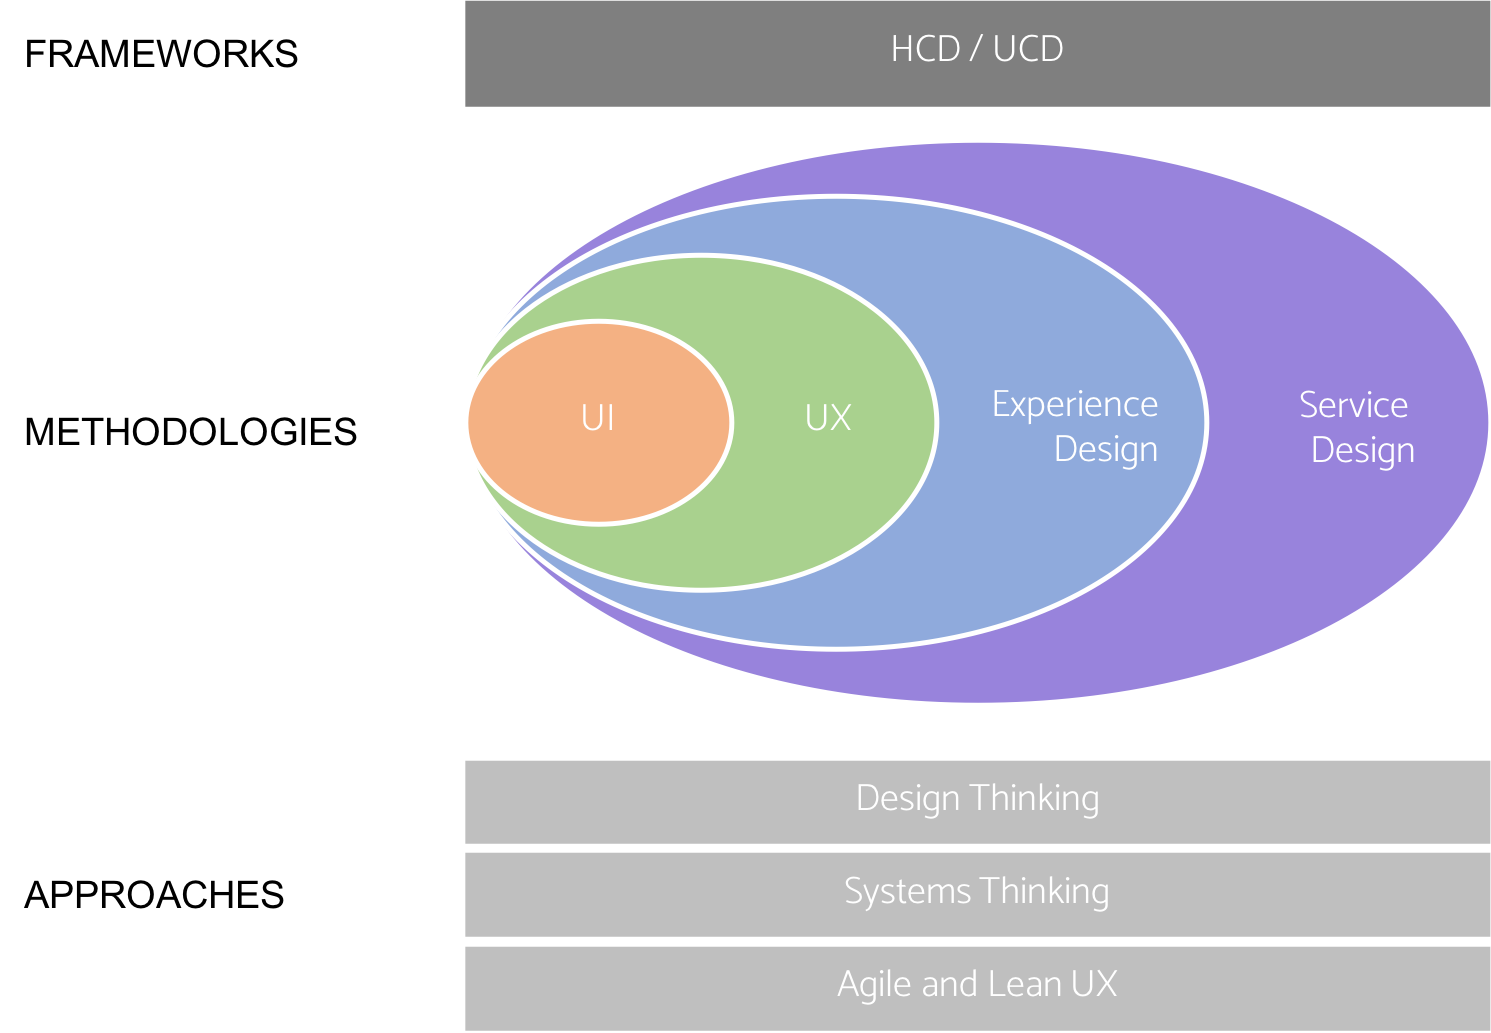 7 Human Centred Design Vs Design Thinking Vs Service Design Vs Ux What Do They All Mean Linkedin Human Centered Design Service Design Design Thinking